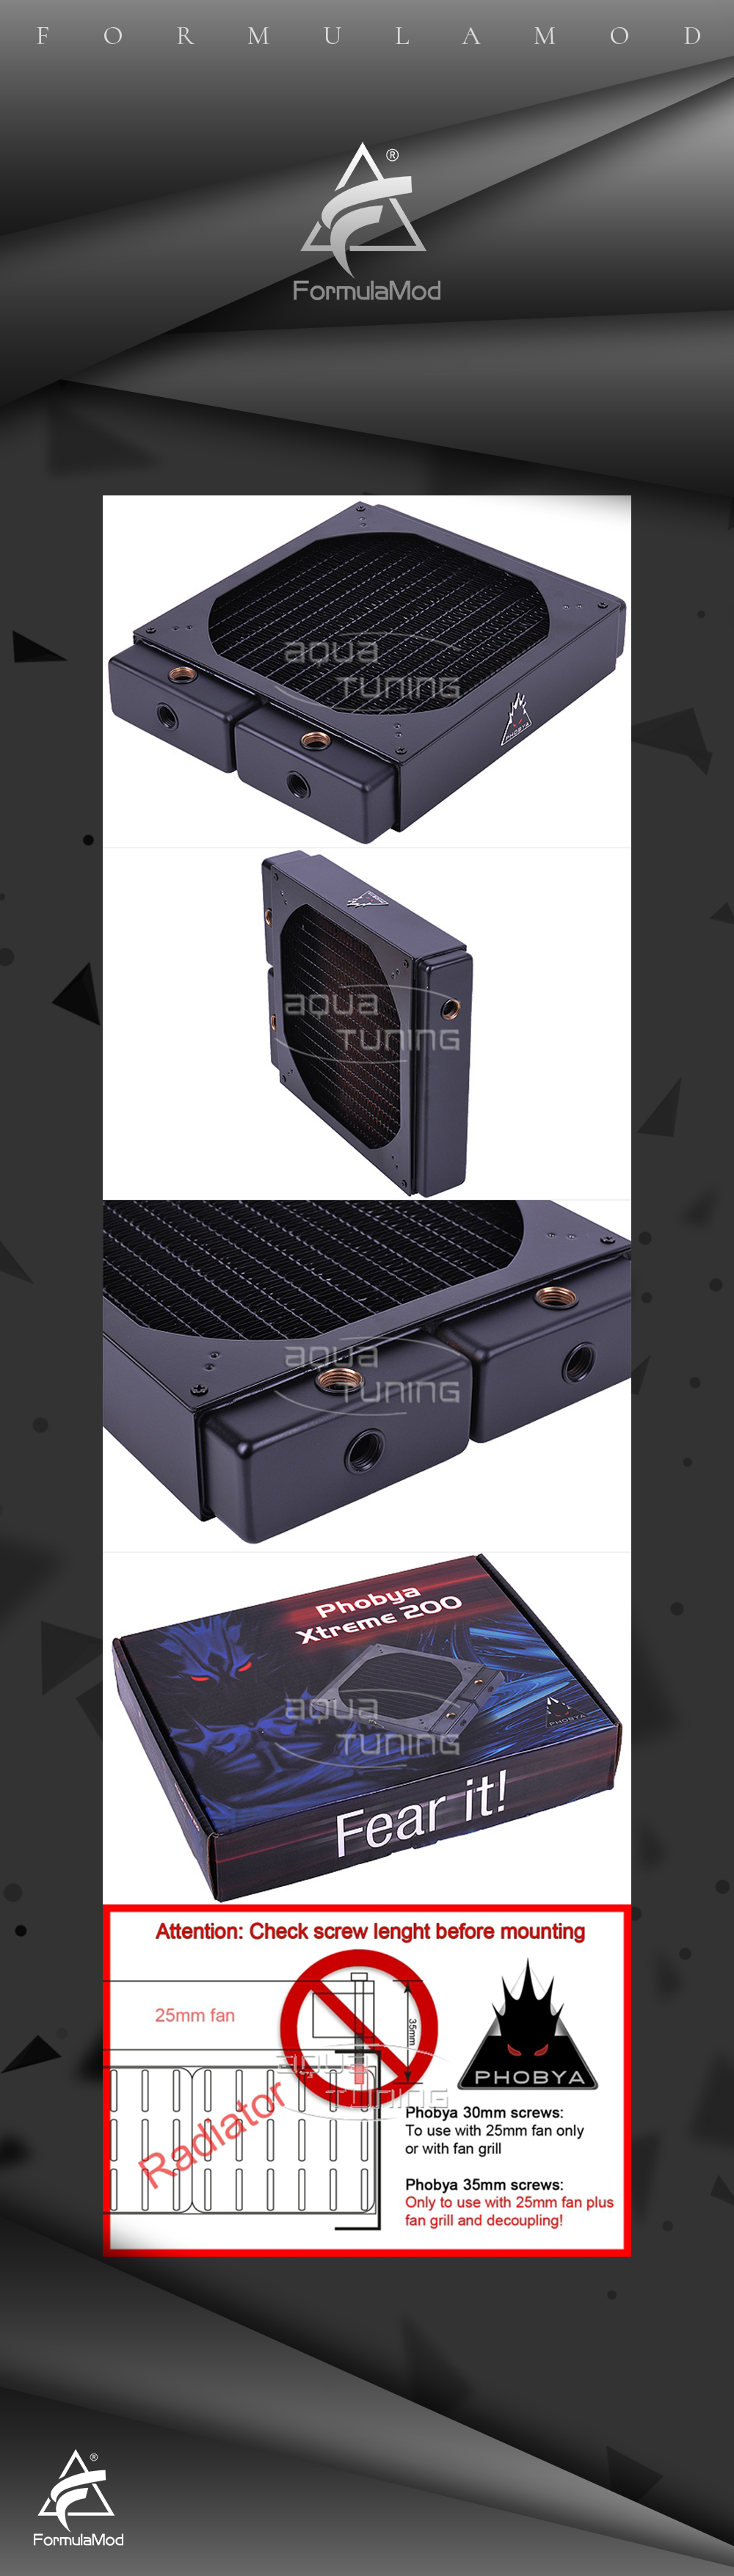 Cold Cold drainage copper heat Phobya Xtreme 200 - V.2 version of matt black 650D 600T